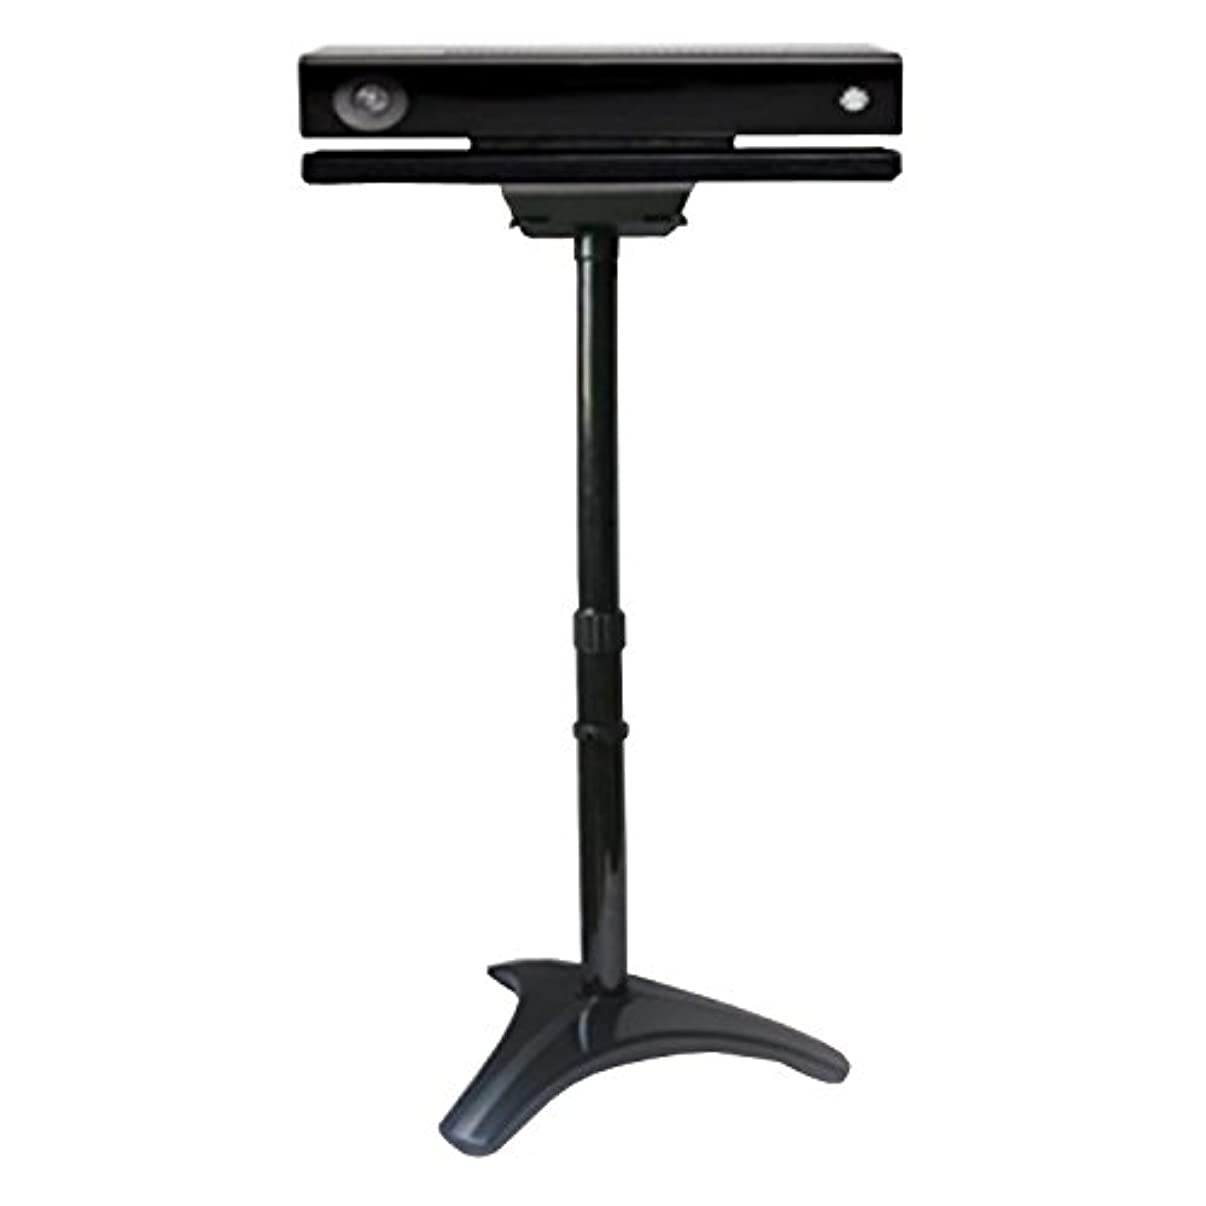 OSTENT Floor Mount Dock Stand Holder Compatible for Microsoft Xbox One Kinect Sensor Camera